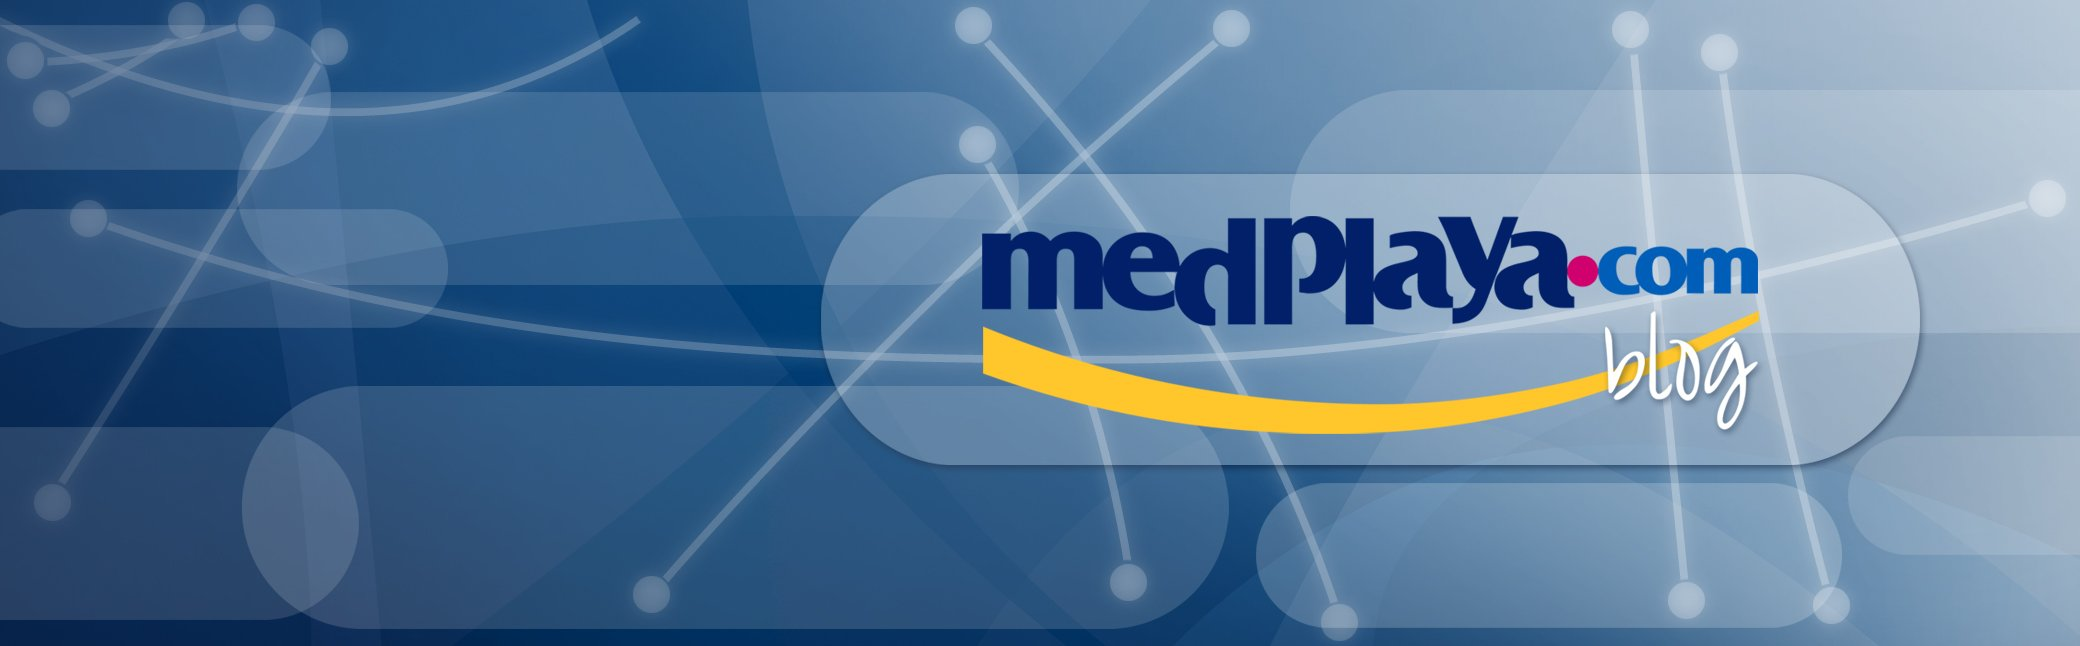 FIND OUT WHAT IS NEW AND HAPPENING IN MEDPLAYA